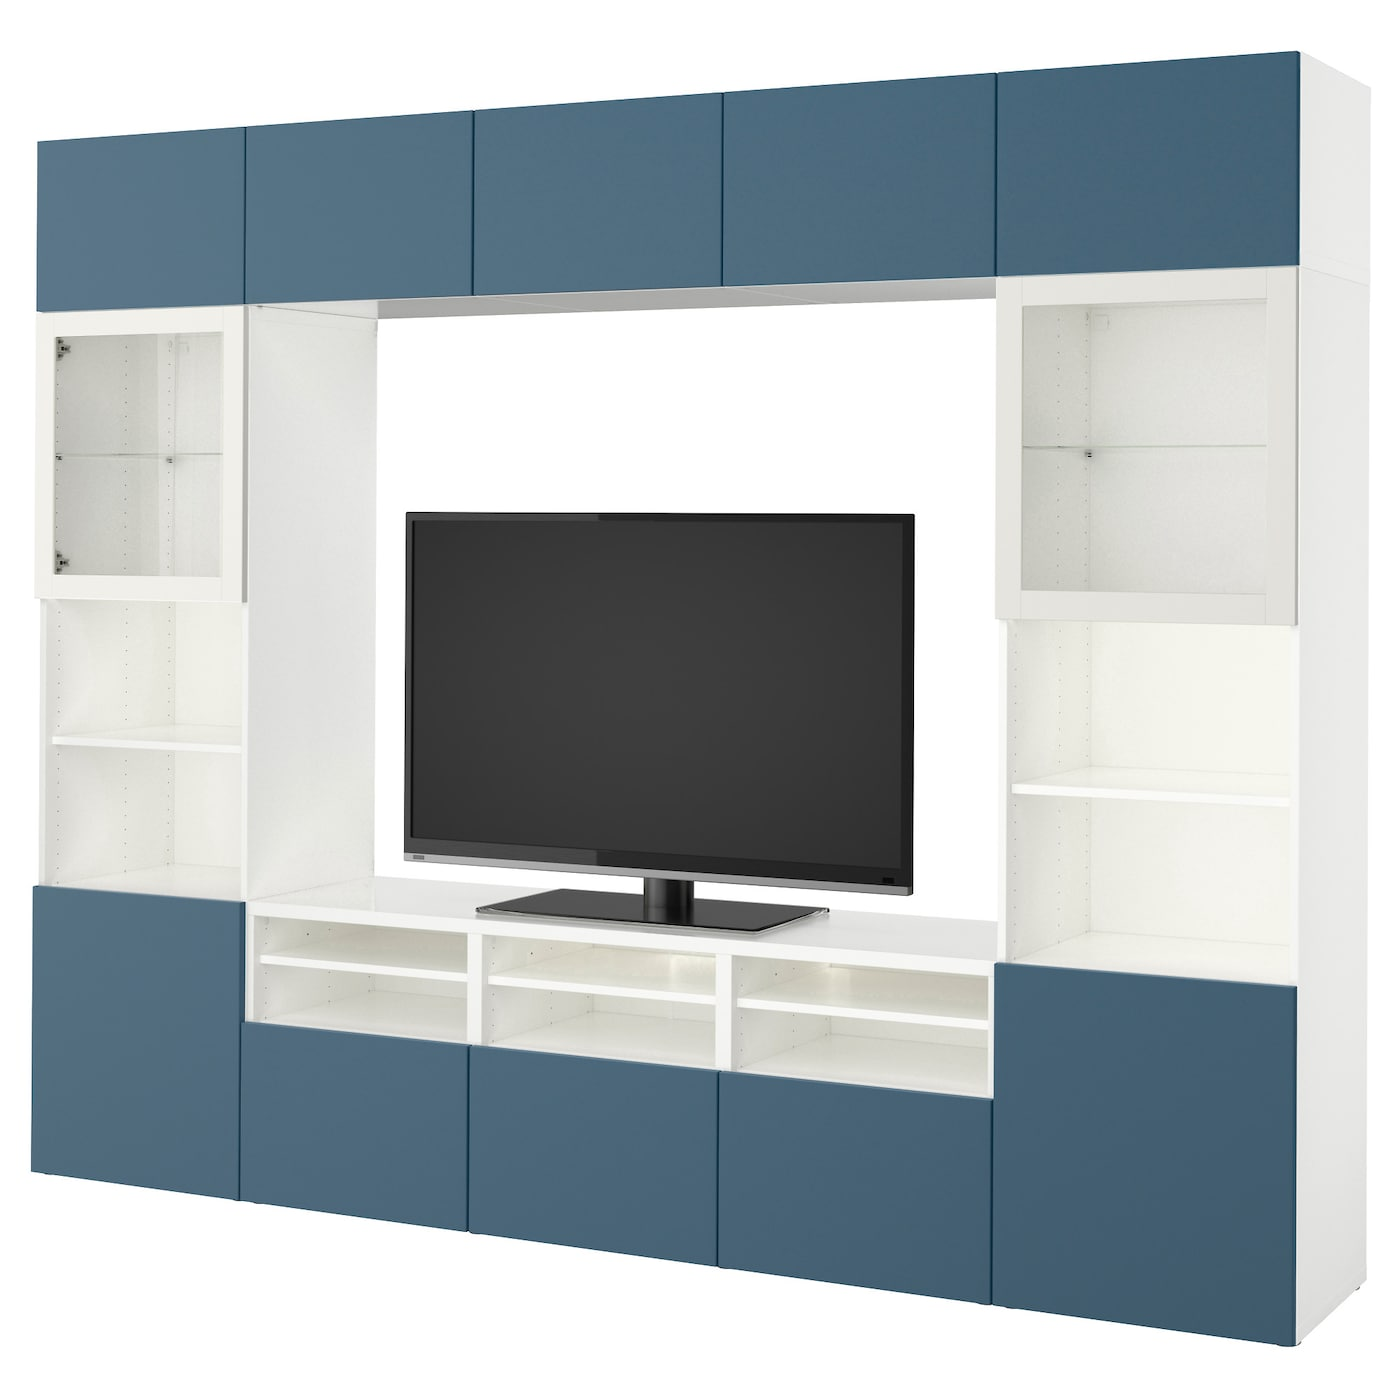 best combinaison rangt tv vitrines blanc valviken bleu fonc verre transparent 300x40x230 cm ikea. Black Bedroom Furniture Sets. Home Design Ideas